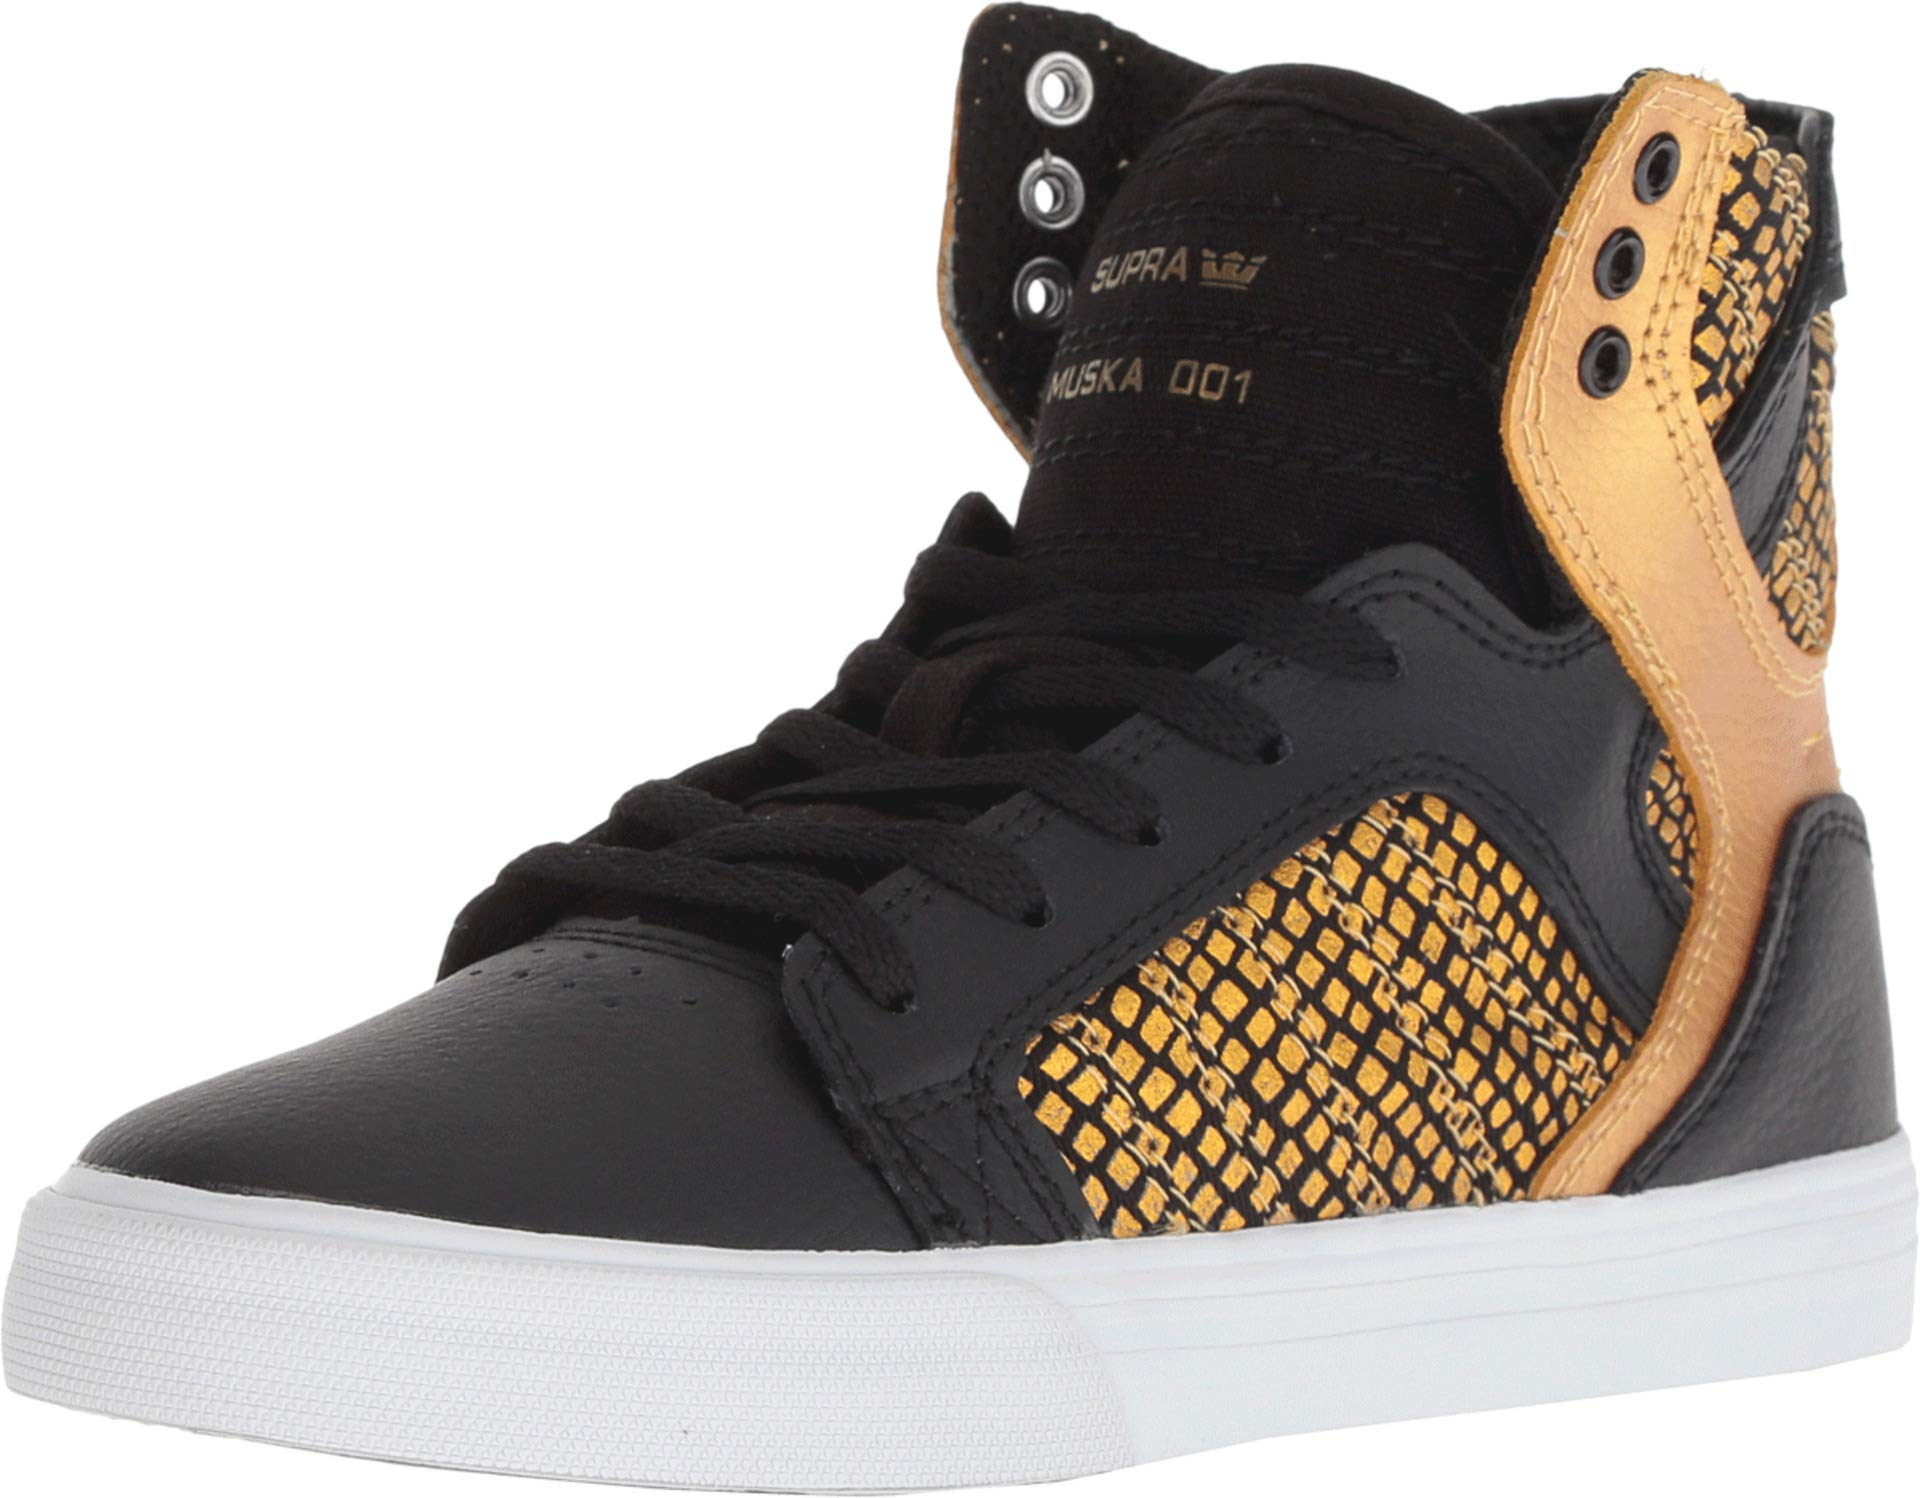 28eee8eadde Galleon - Supra Kids Boy's Skytop (Little Kid/Big Kid) Black/Gold/Black/ White 12 M US Little Kid